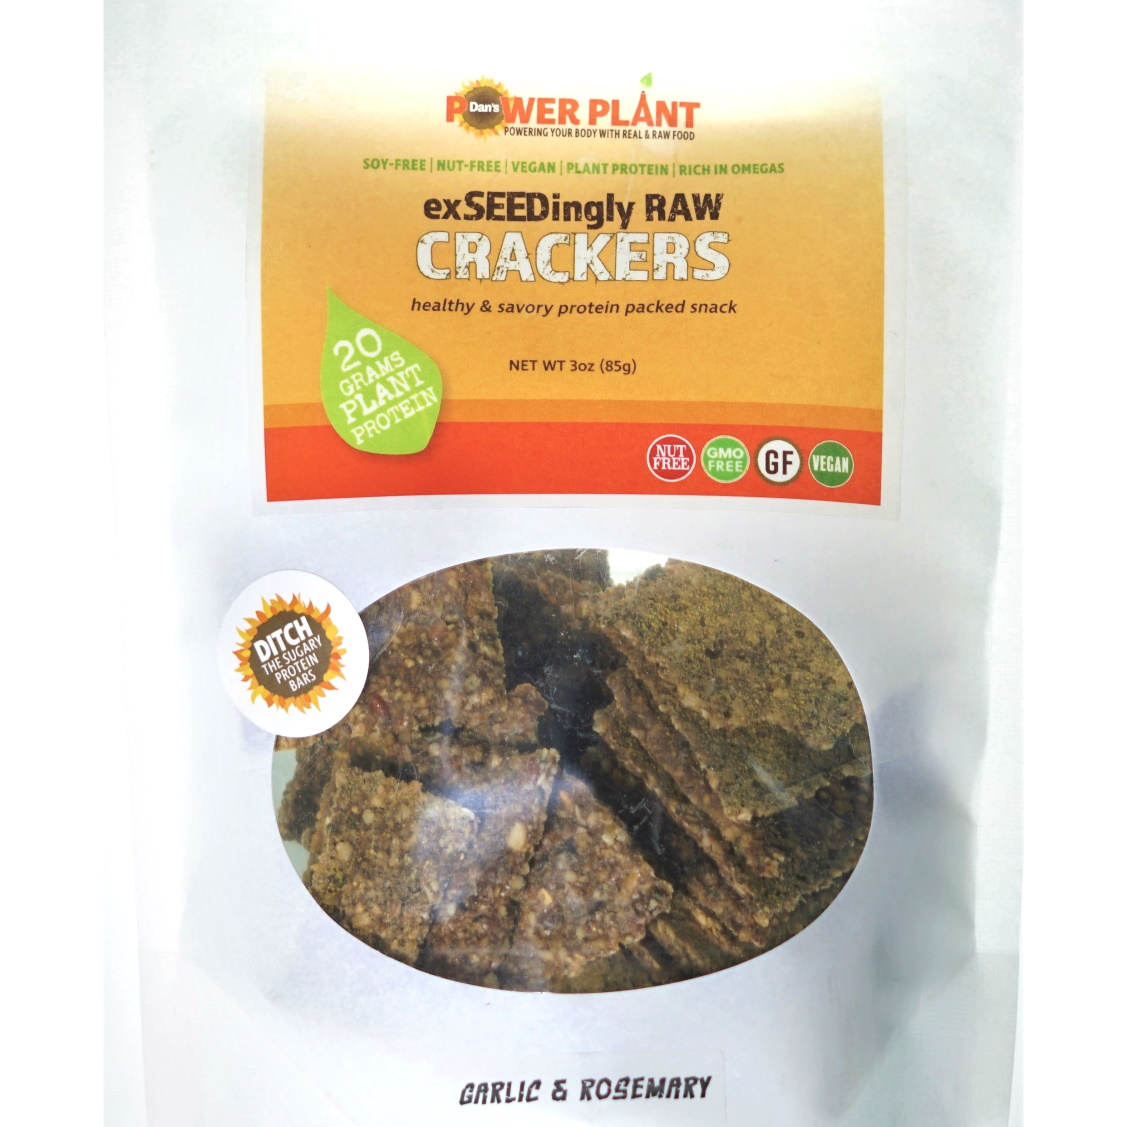 Garlic & Rosemary exSEEDingly RAW Crackers